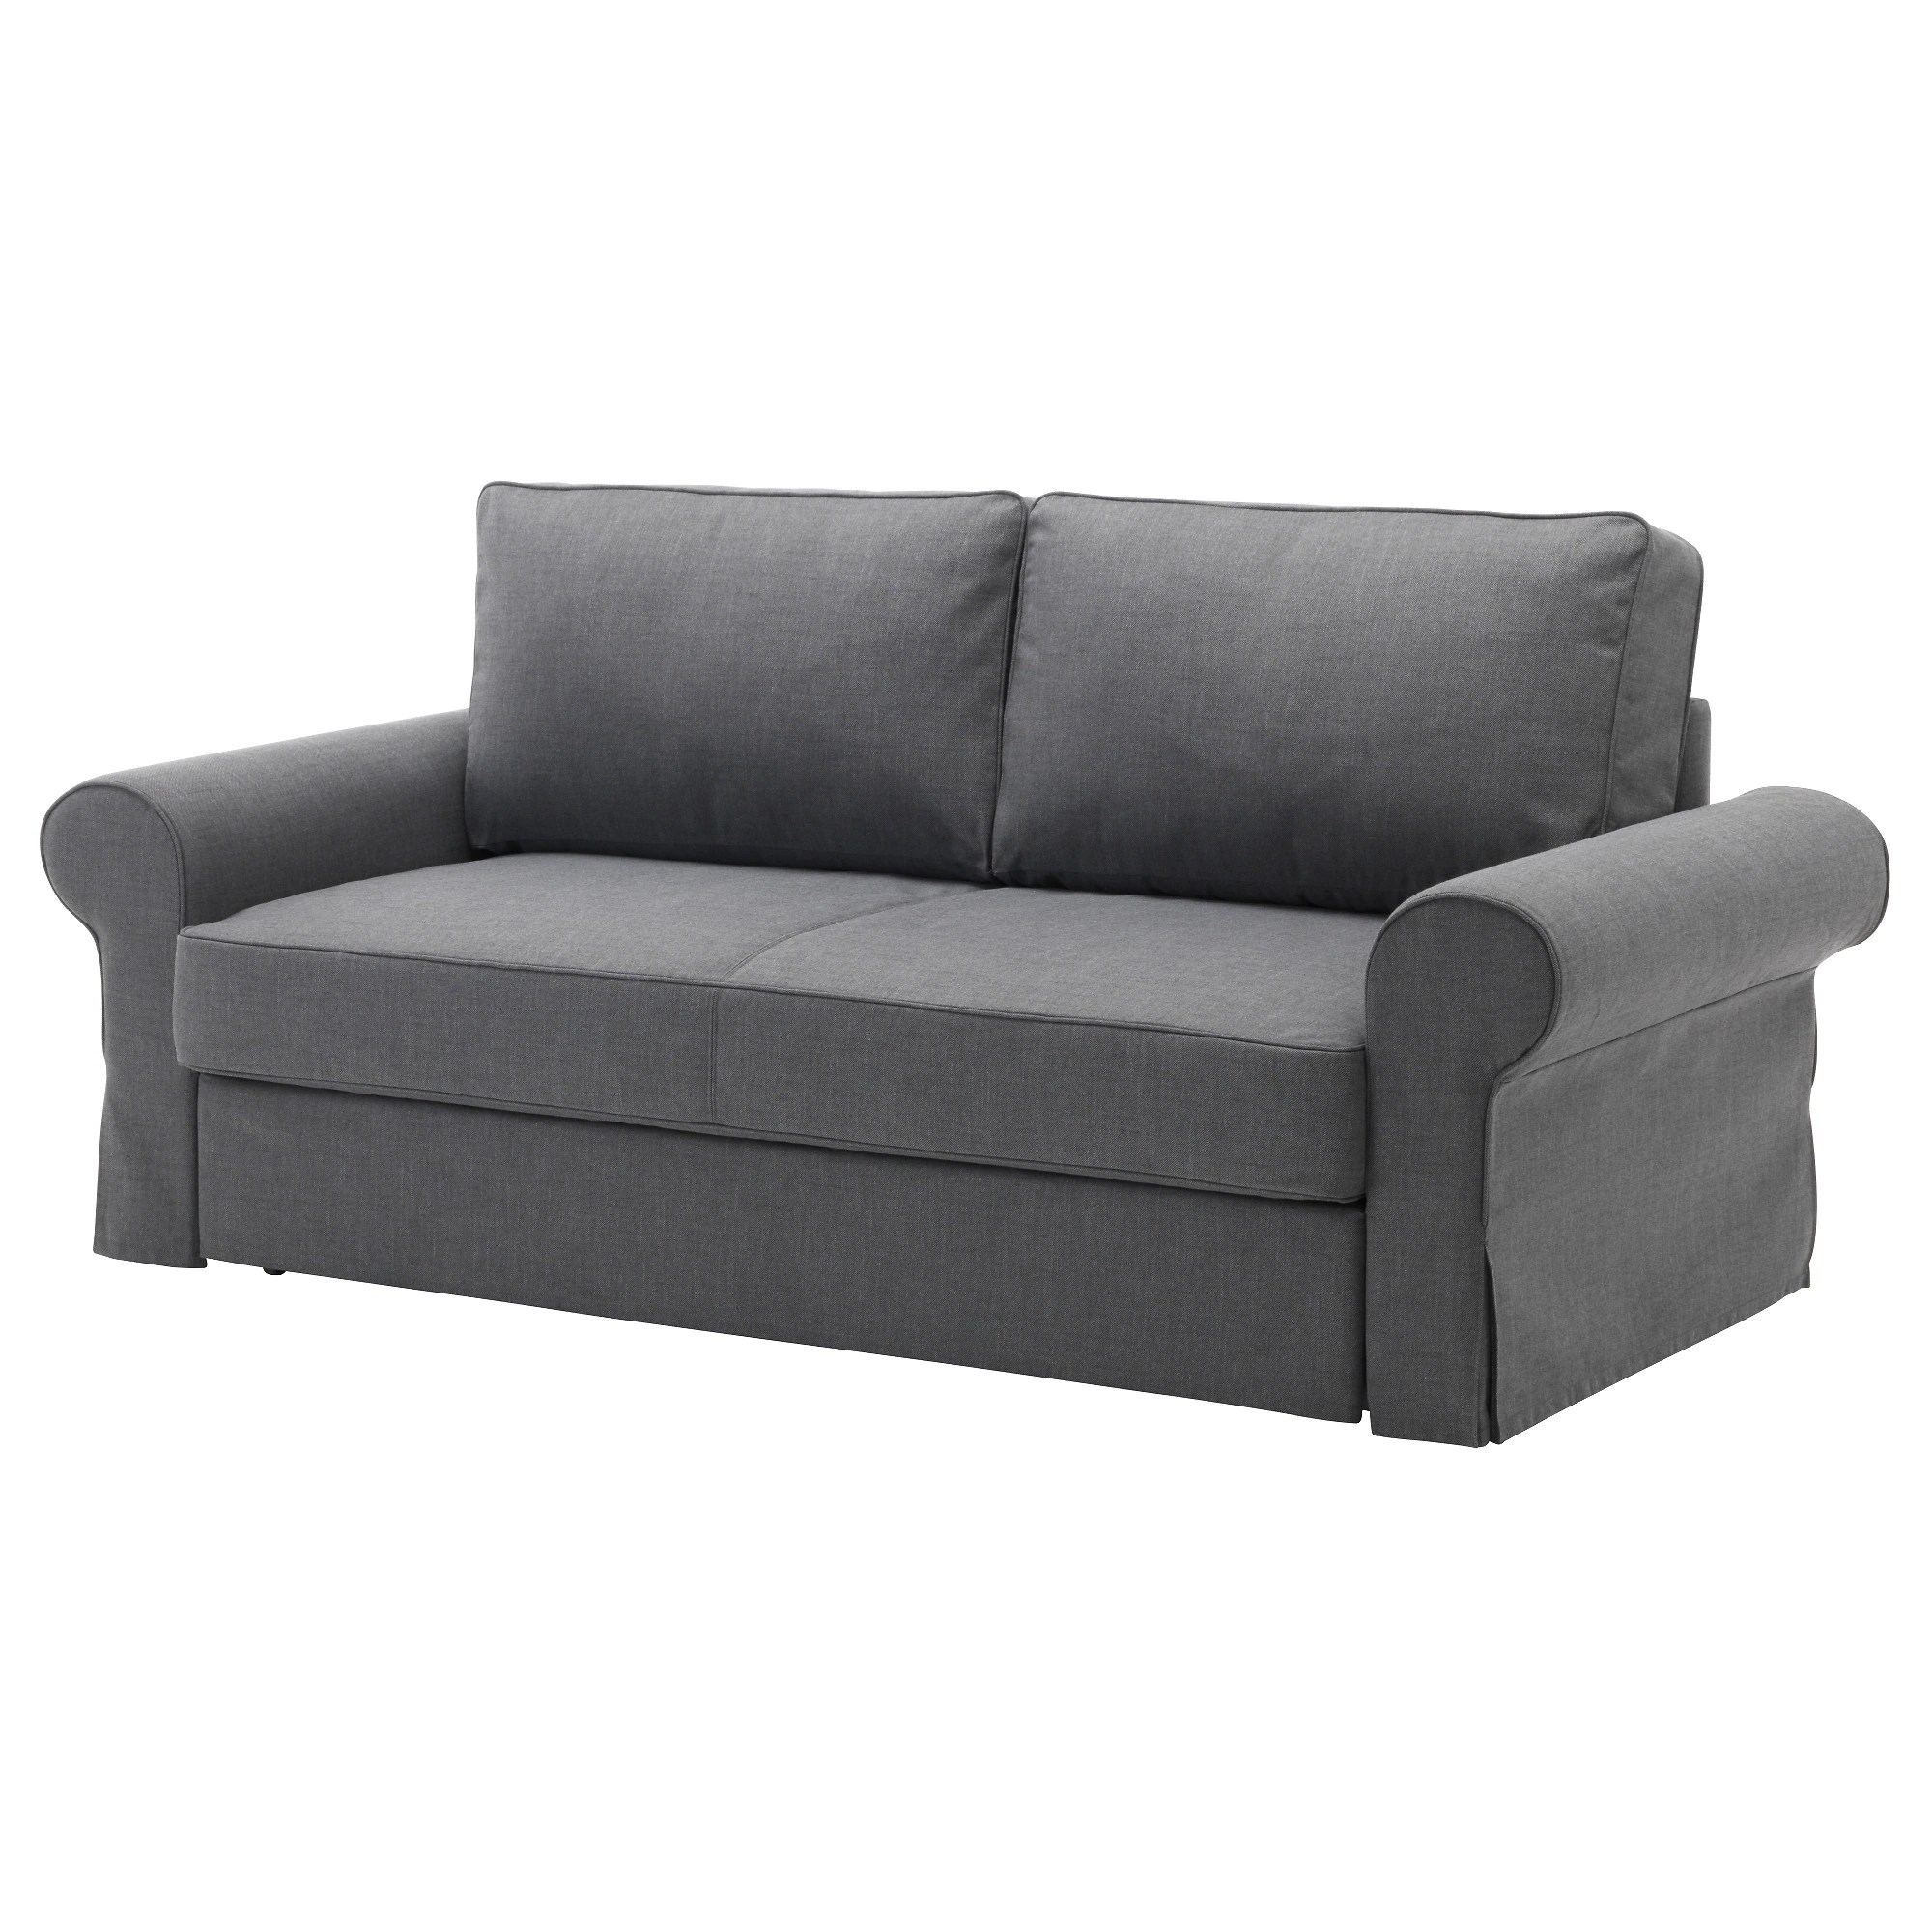 Backabro Sessel Backabro 3er Bettsofa Tygelsjö Beige